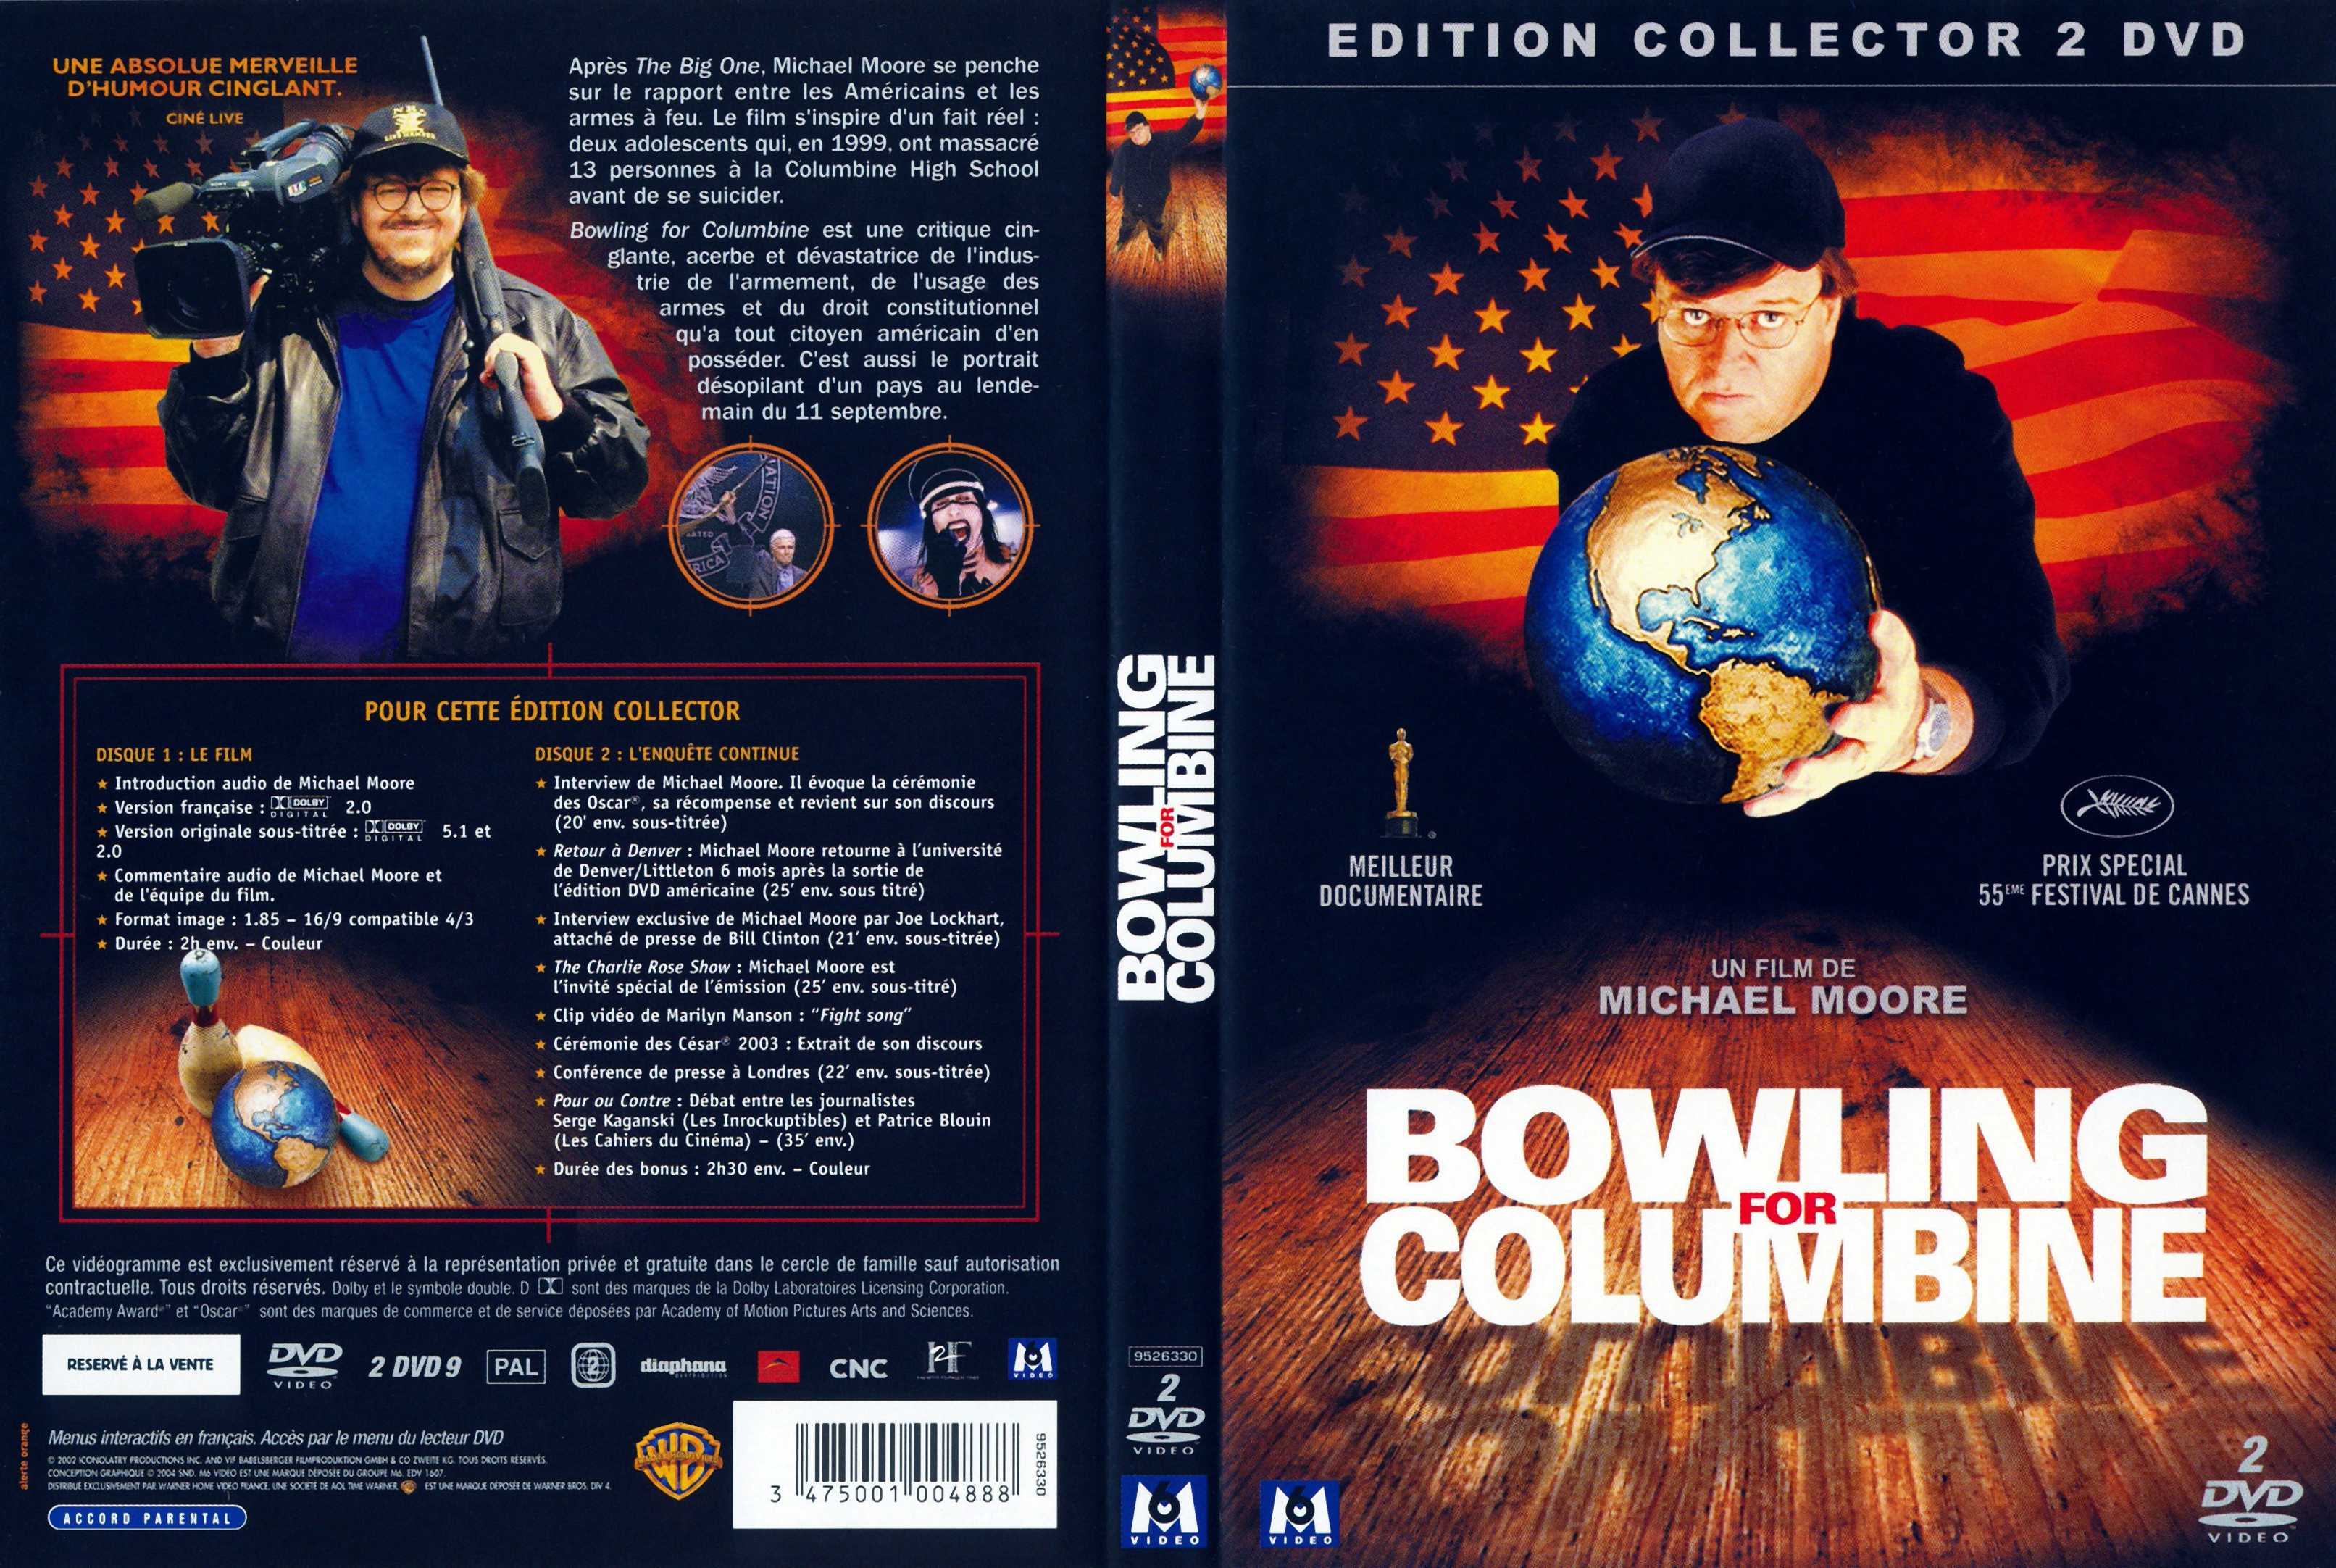 bowling for columbine essay introduction